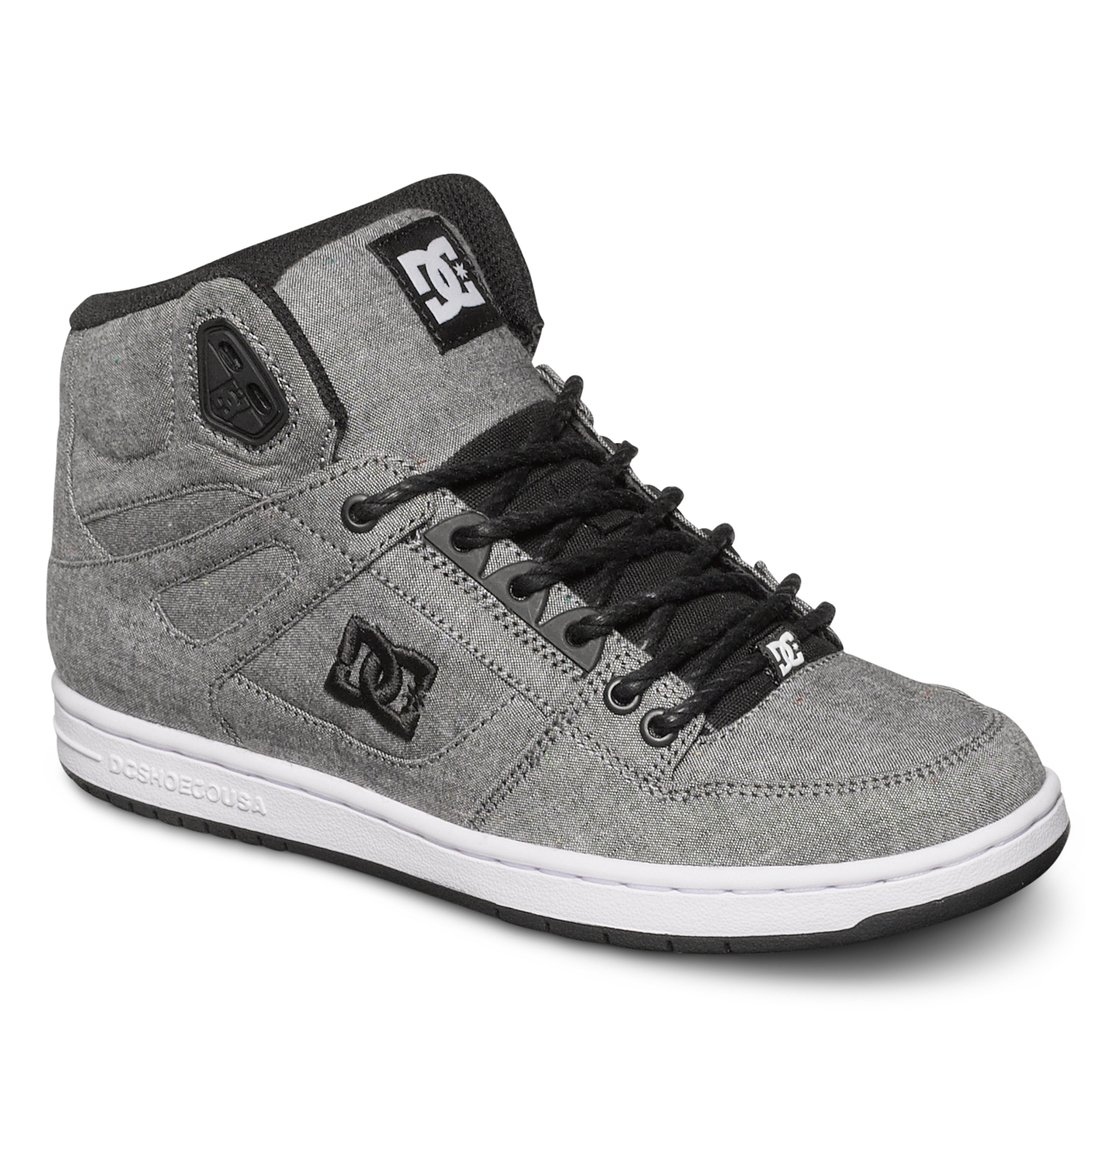 DC Shoes - DC Rebound Hi Womens Shoes - Navy